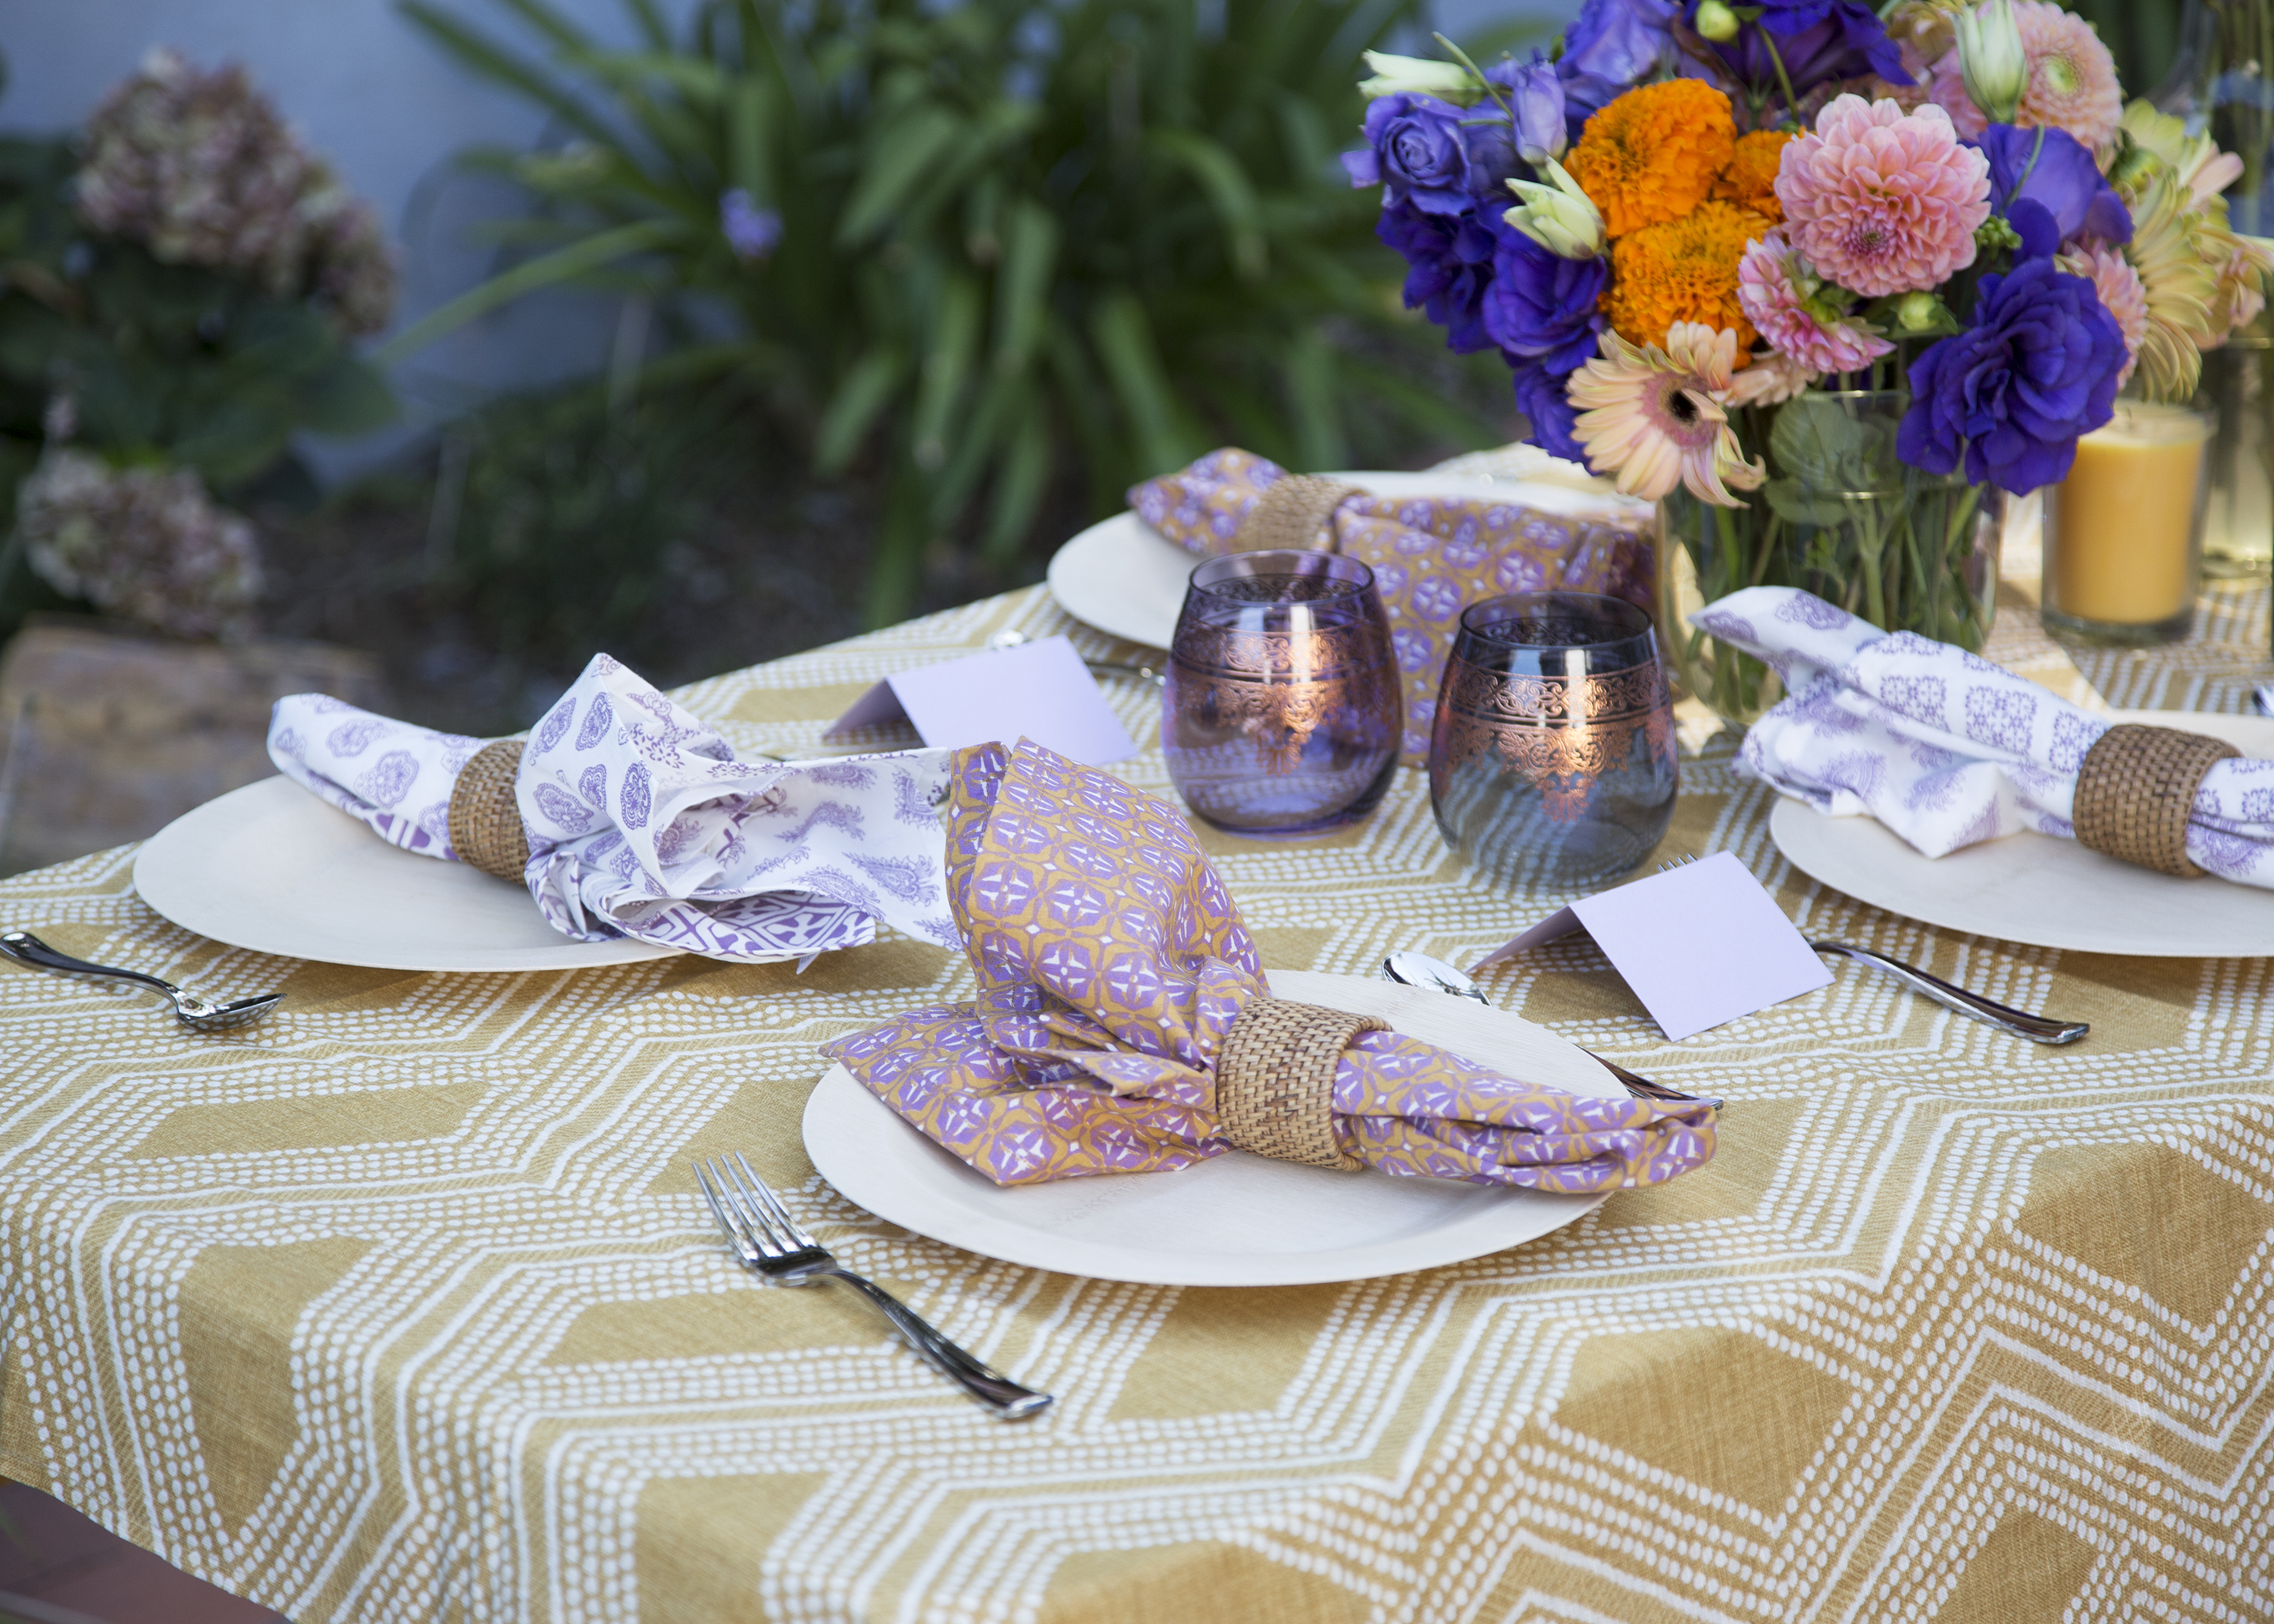 Both Mustard Hued And Ombre Glass Candles Filled The Table; Woven Napkin  Rings Were Combined With Fabric Napkins In 3 Different Prints.